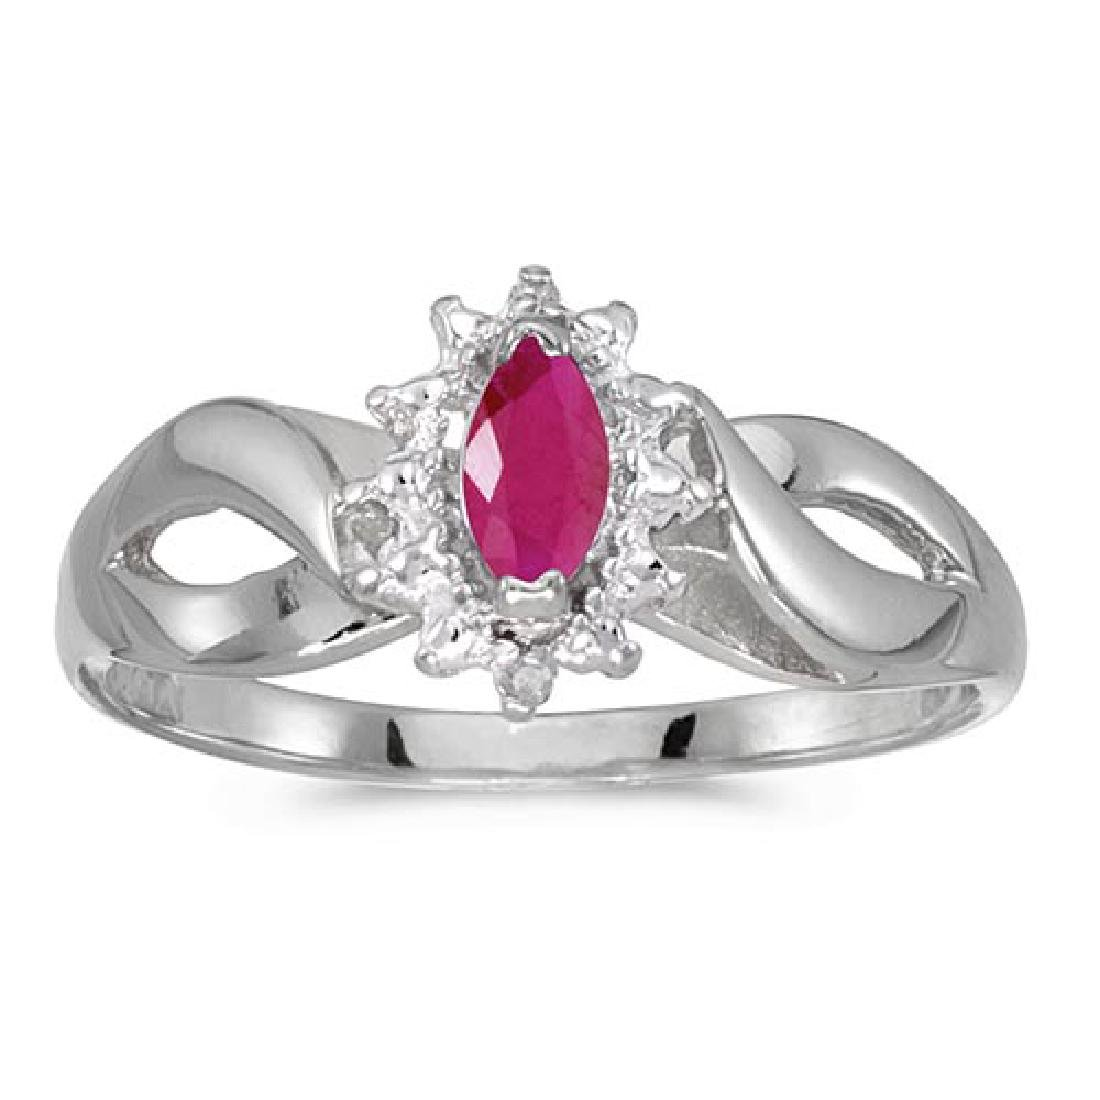 Certified 10k White Gold Marquise Ruby And Diamond Ring